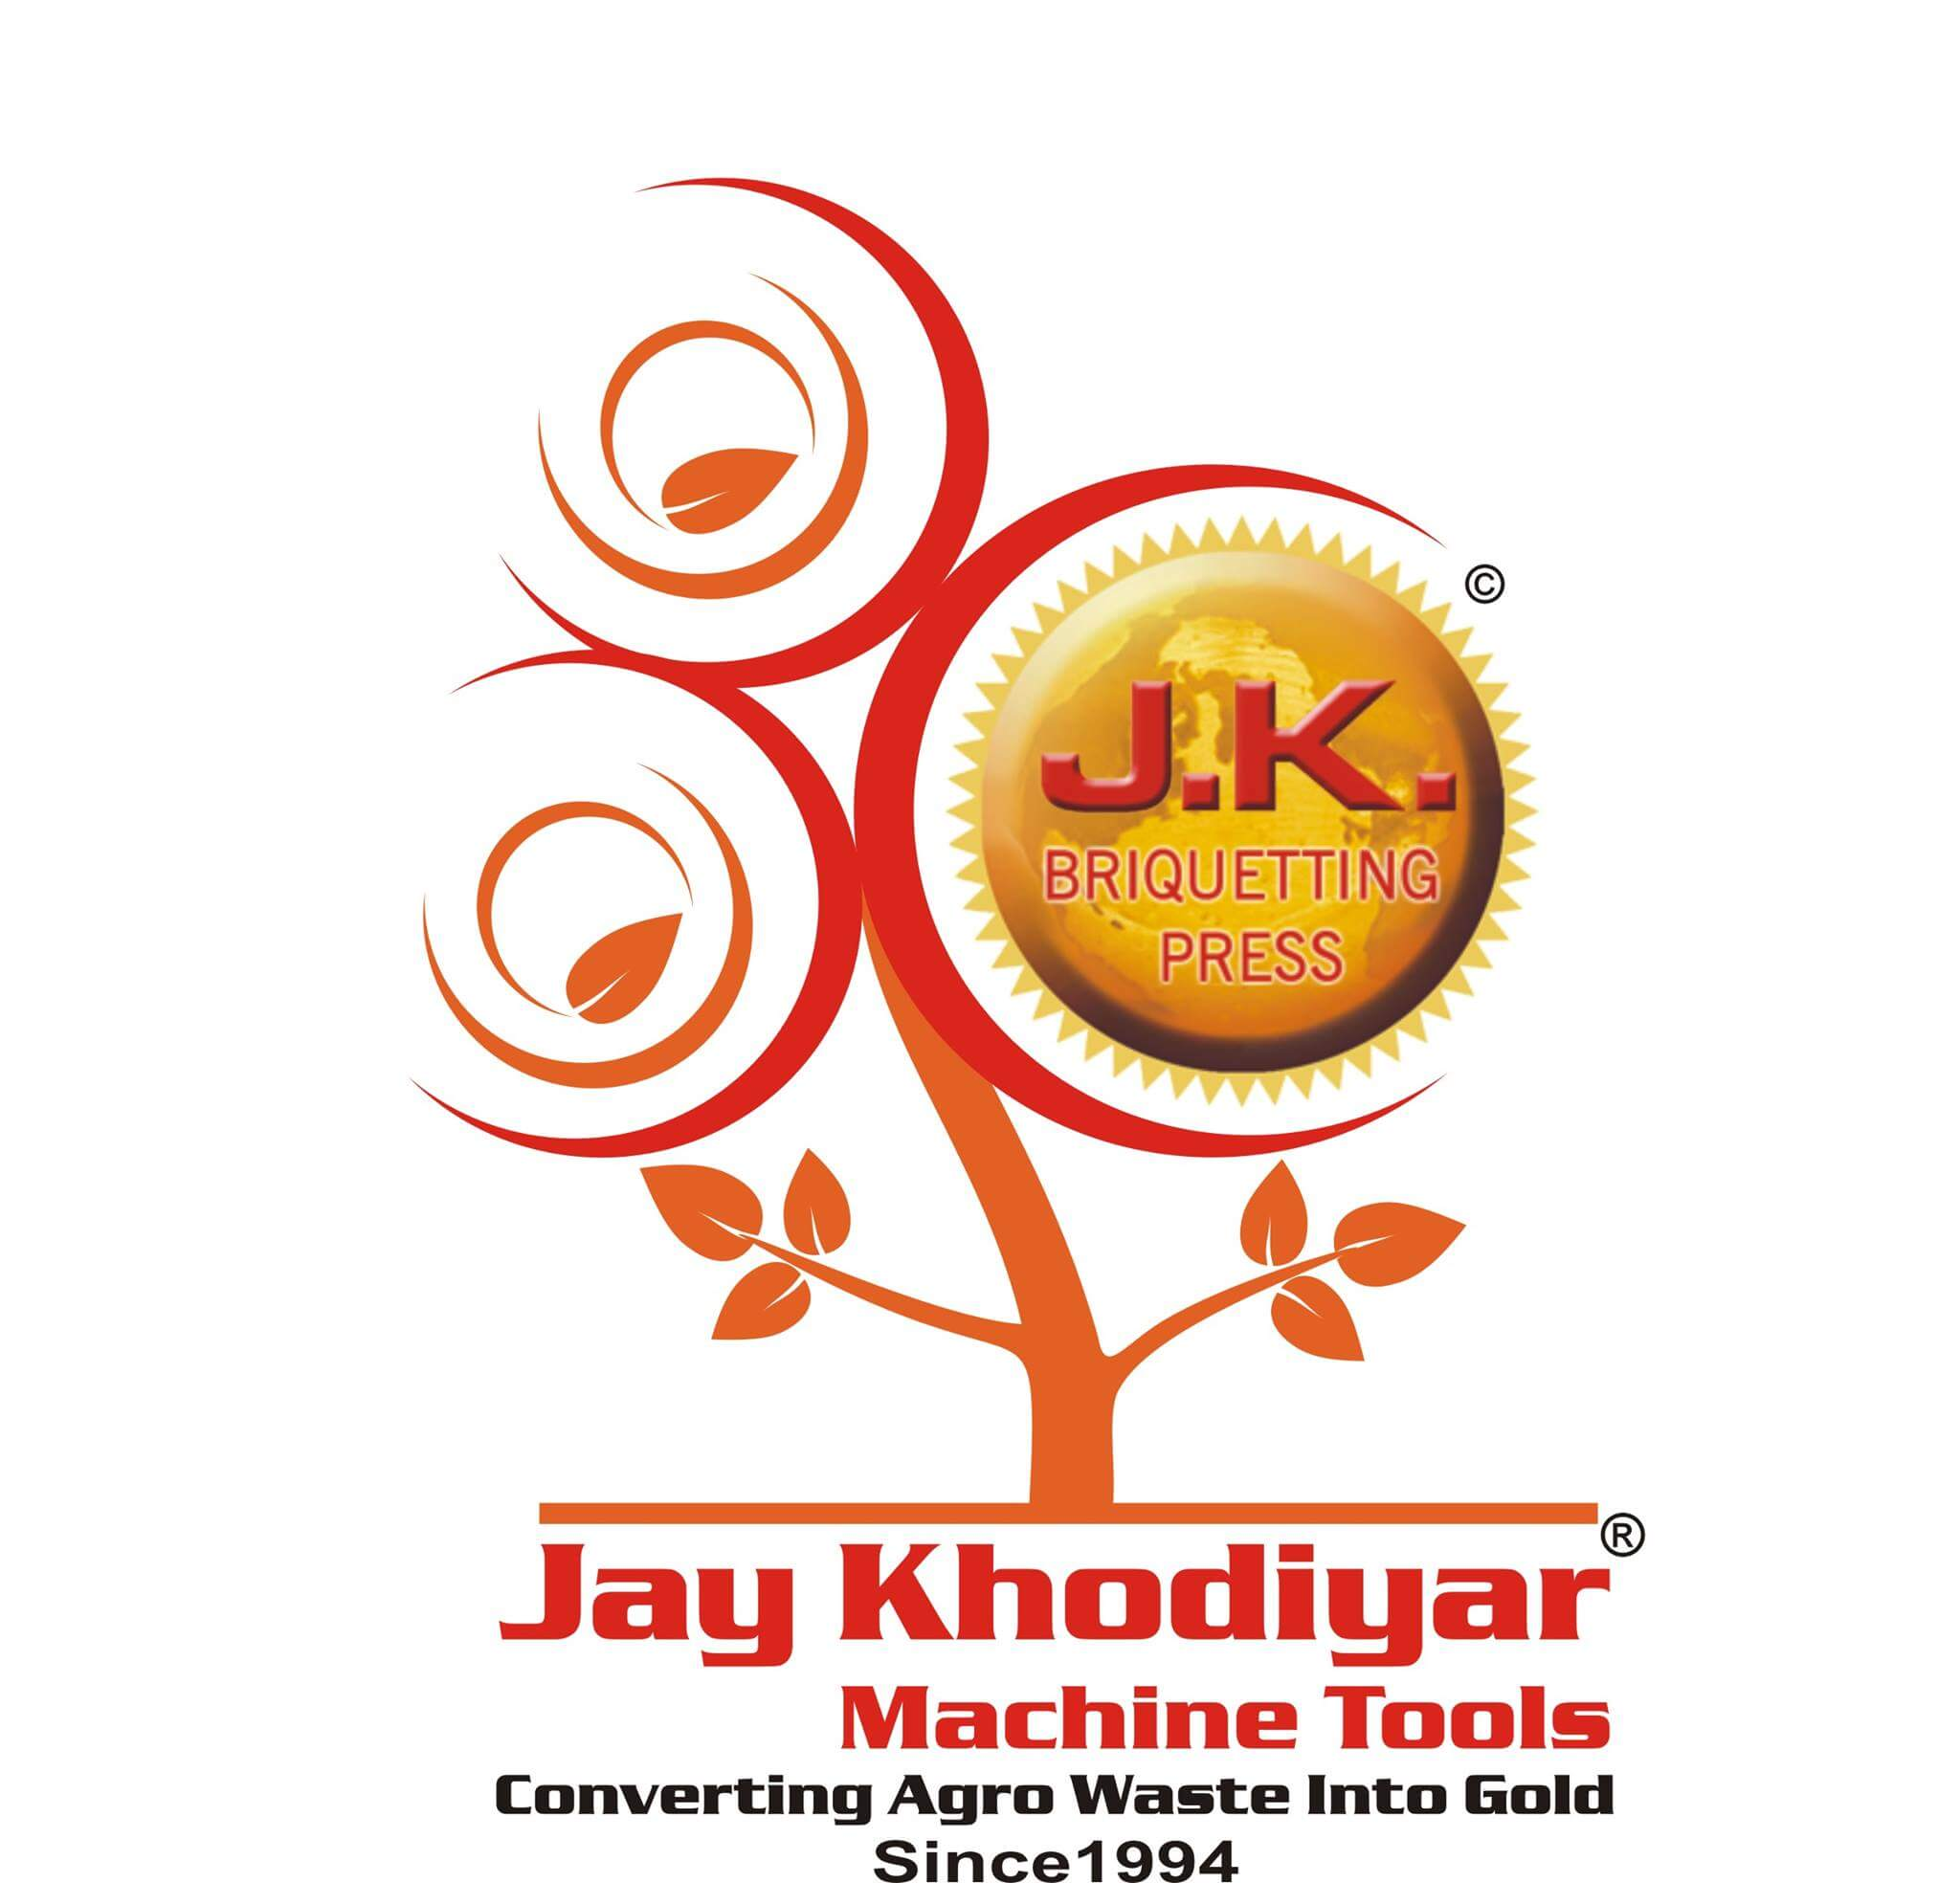 image of Jay Khodiyar Machine Tools